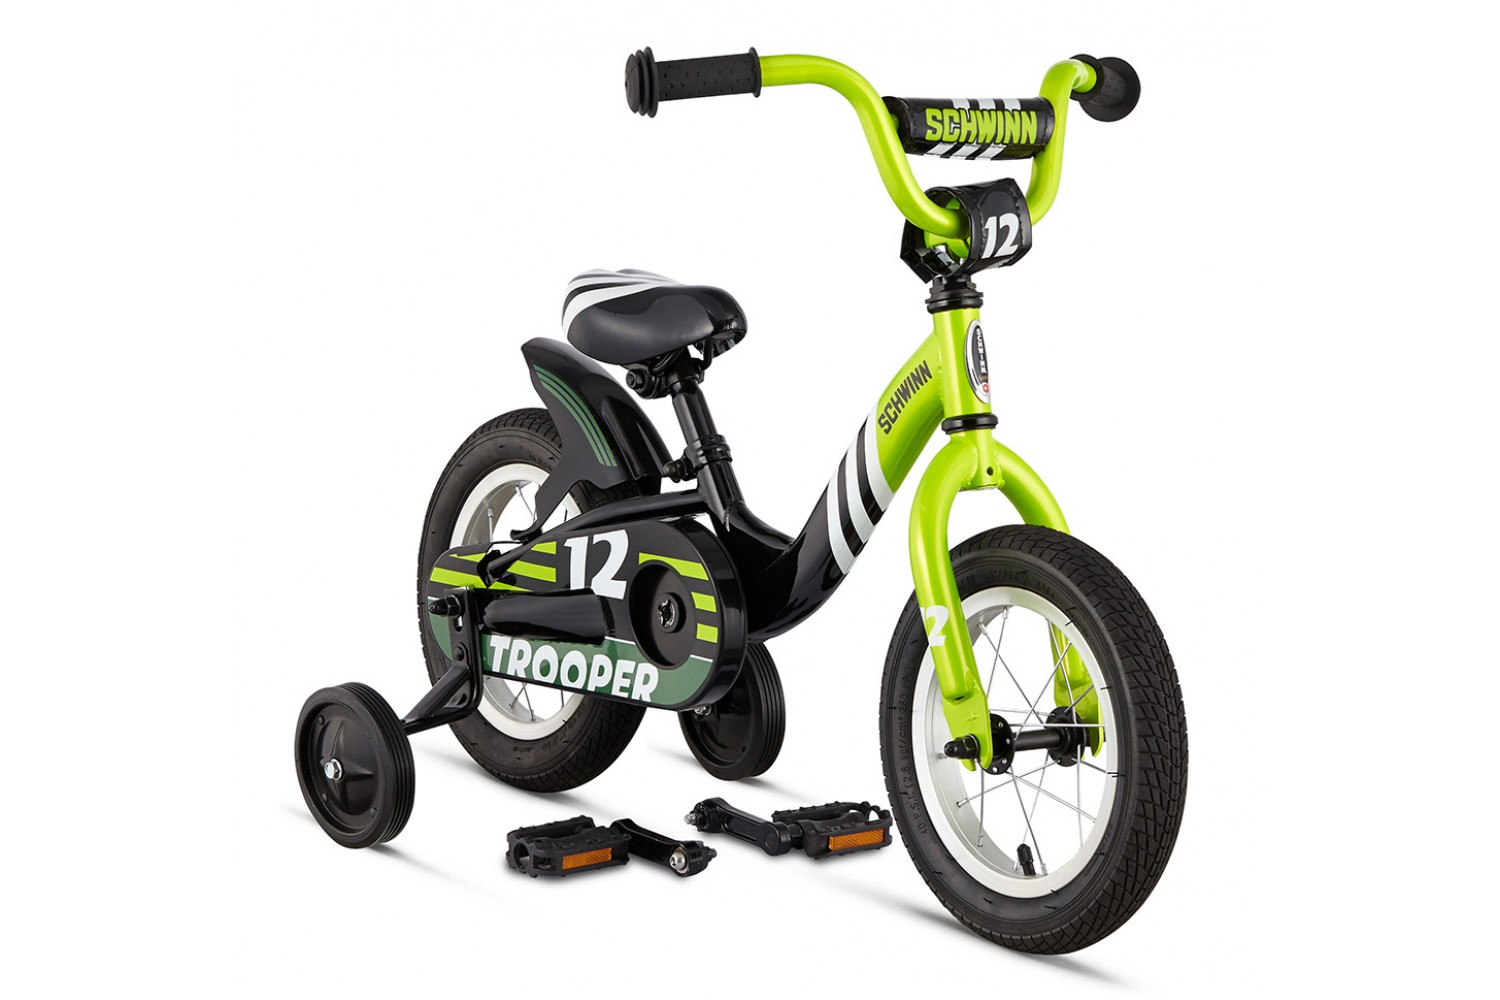 Schwinn Trooper boys 12